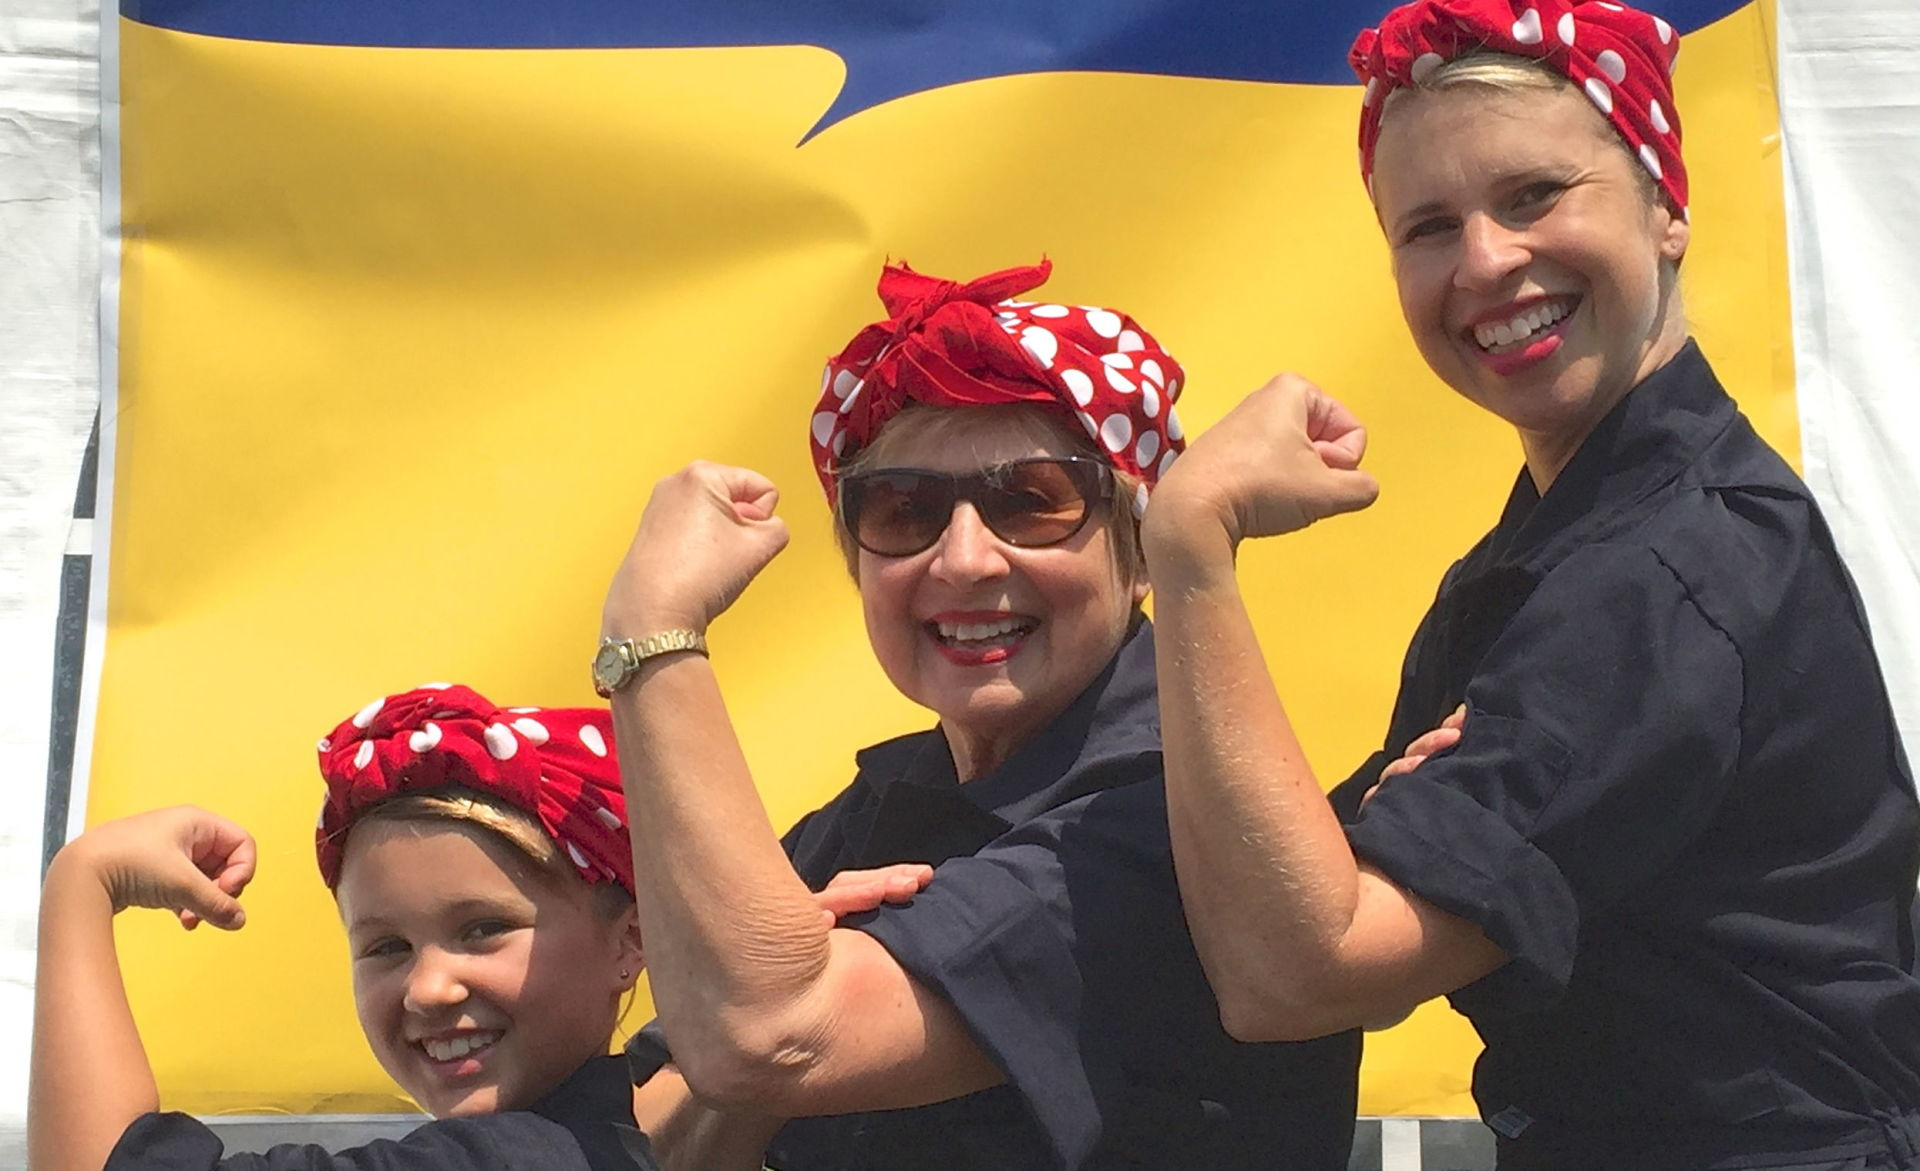 Julia, 9, Carol Burns, 71, and Jennifer Dolan, 43 at the Rosie the Riveter rally in Richmond, CA